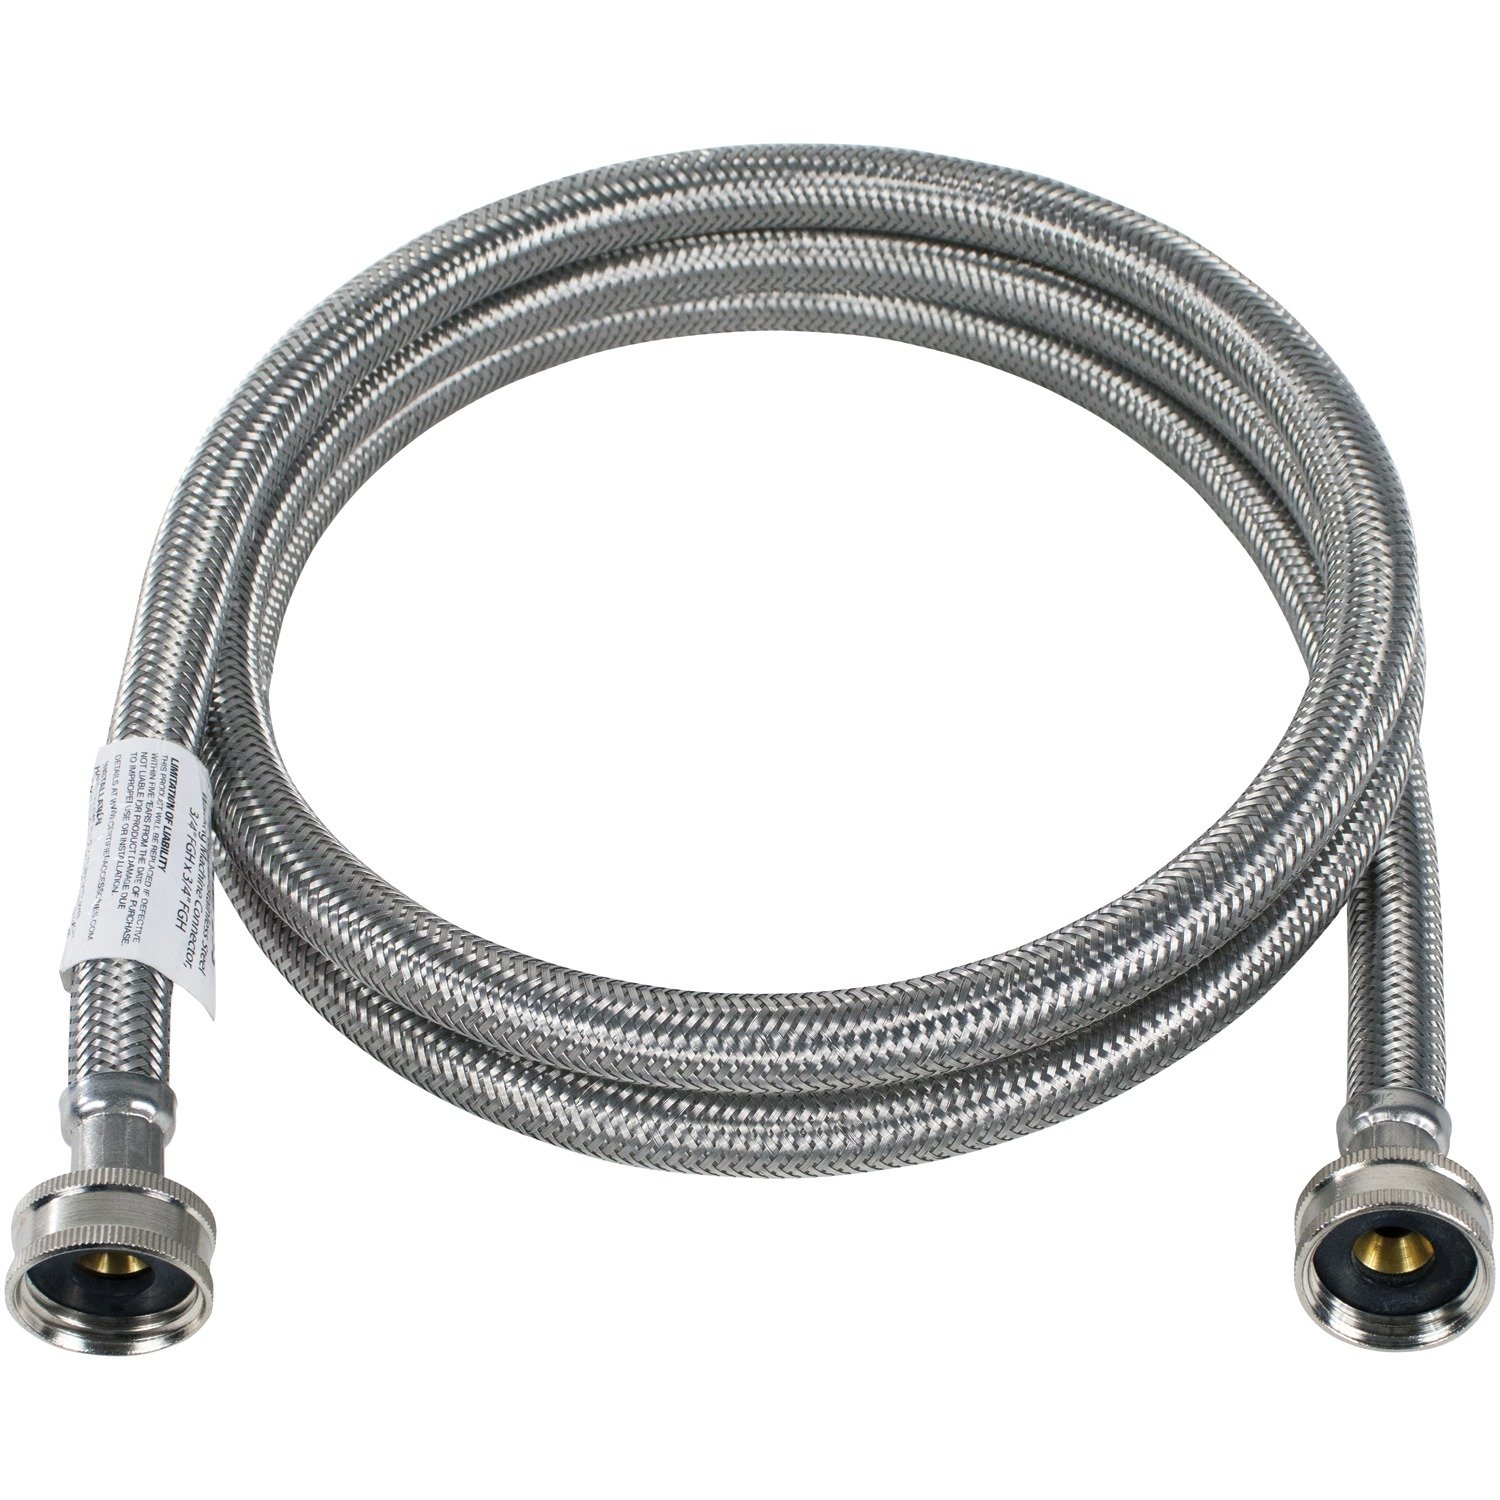 Certified Appliance Accessories WM72SS Braided Stainless Steel Washing Machine Connector, 6'